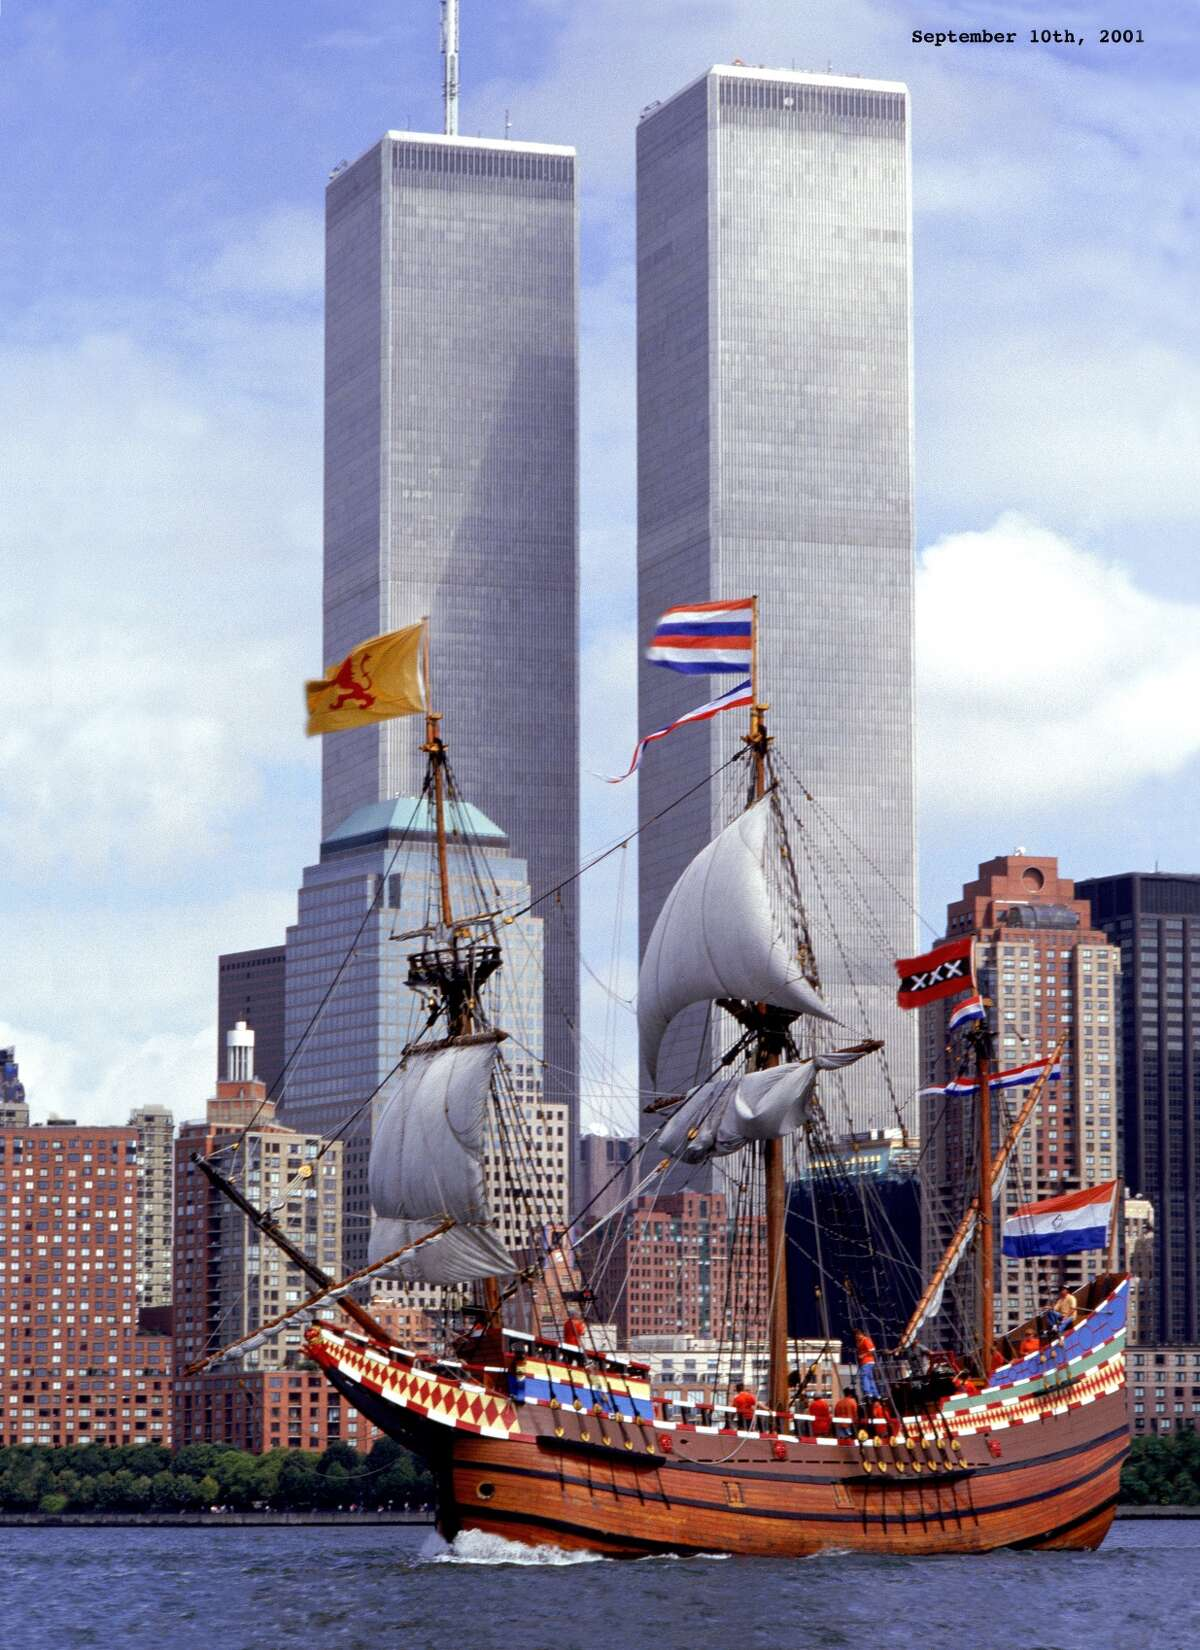 The Half Moon sails past lower Manhattan on Sept. 10, 2001, with the World Trade Center in the background.